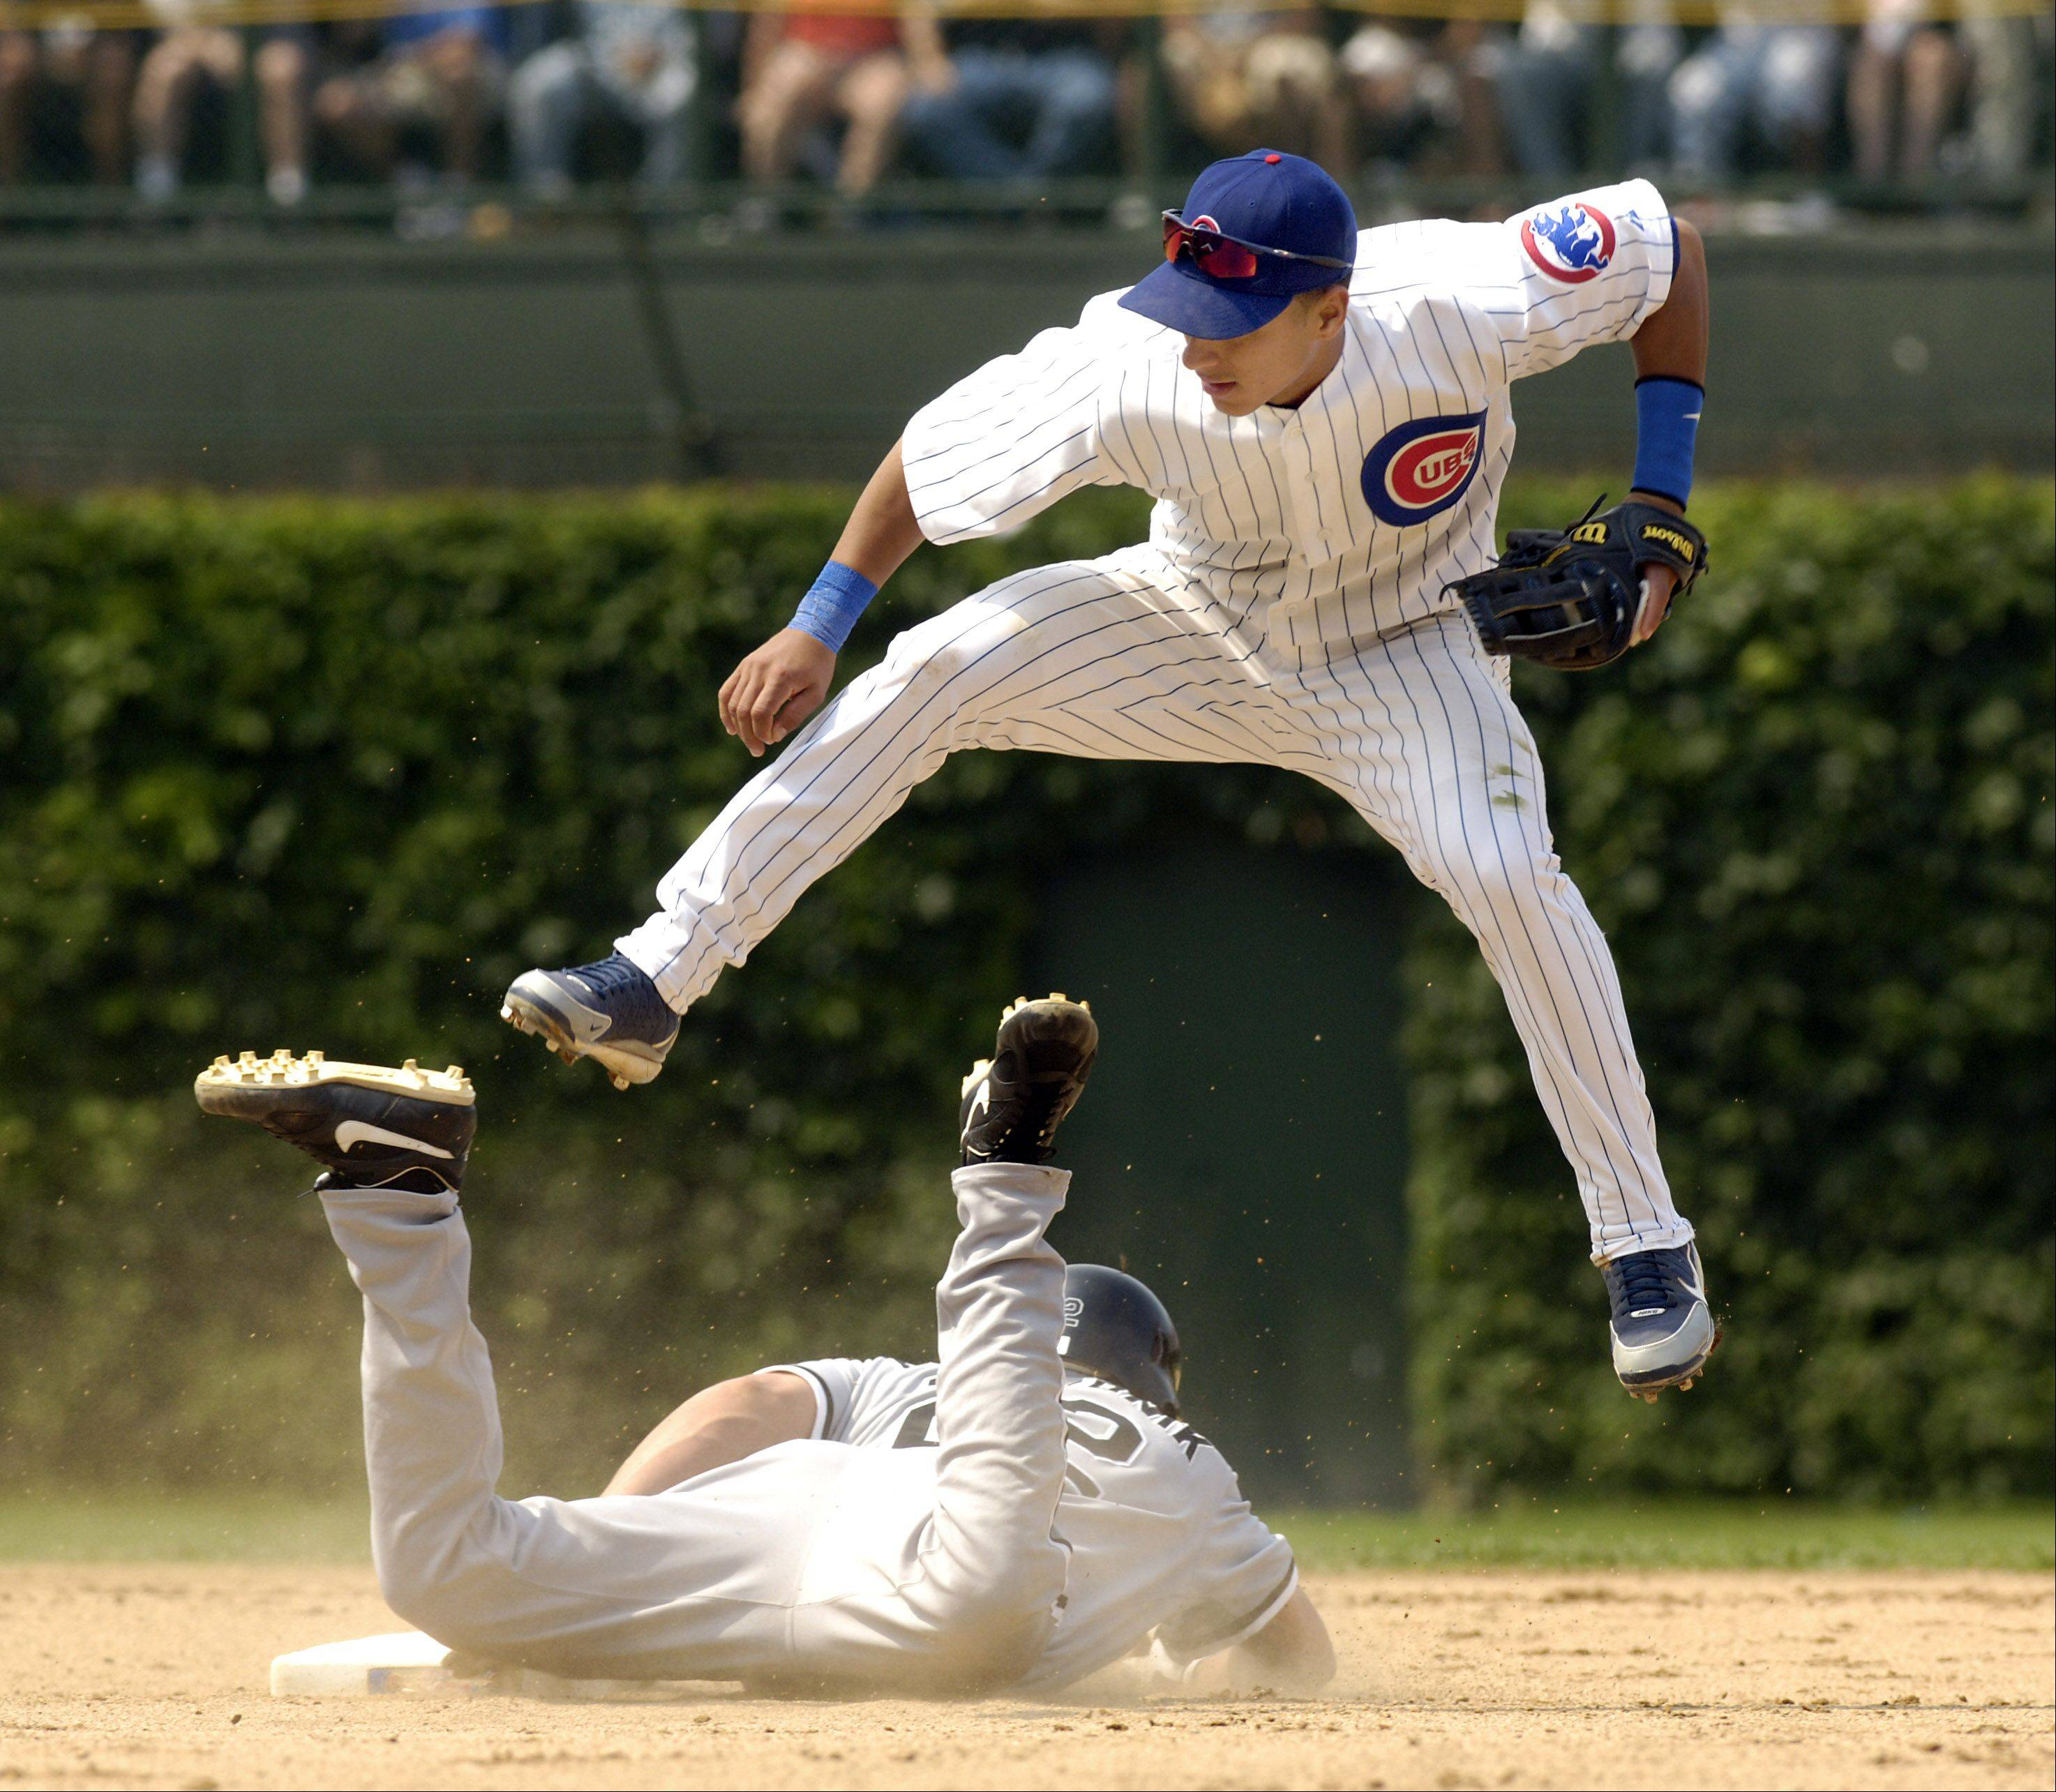 Ronny Cedeno goes up and over at secondbase as White Sox Scott Podsednik slides into the tagout on a steal.